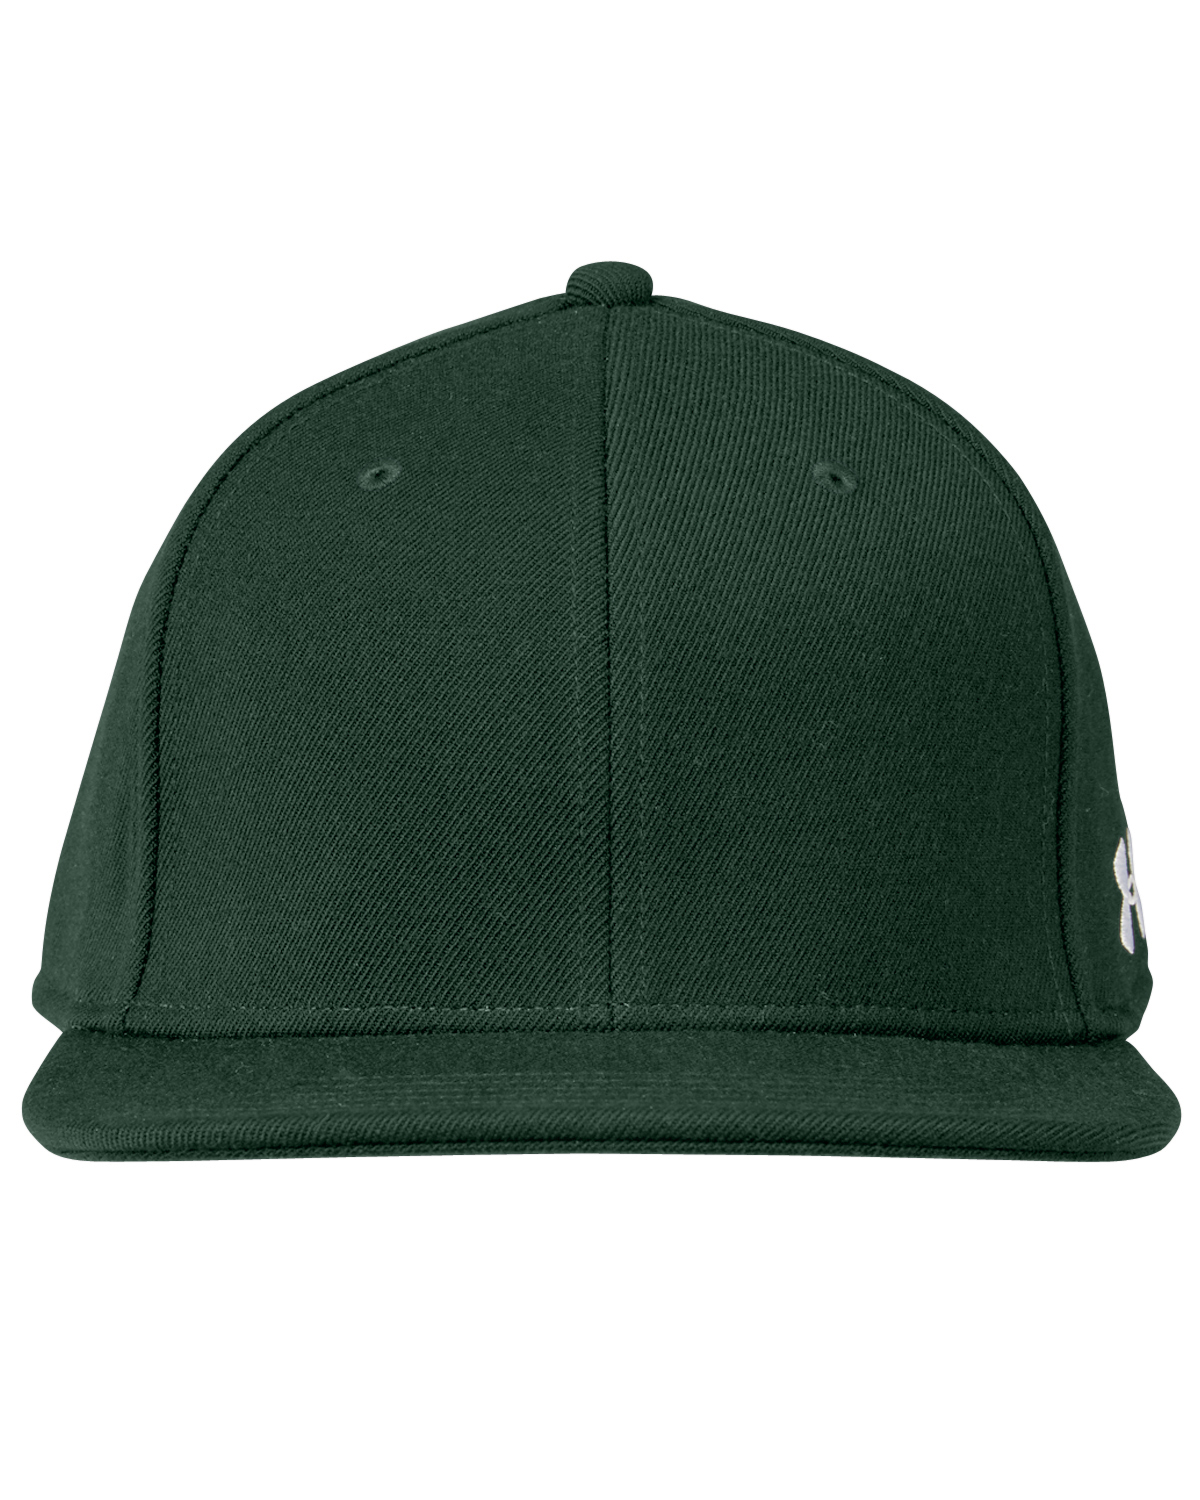 Under Armour Flat Bill Cap- Solid